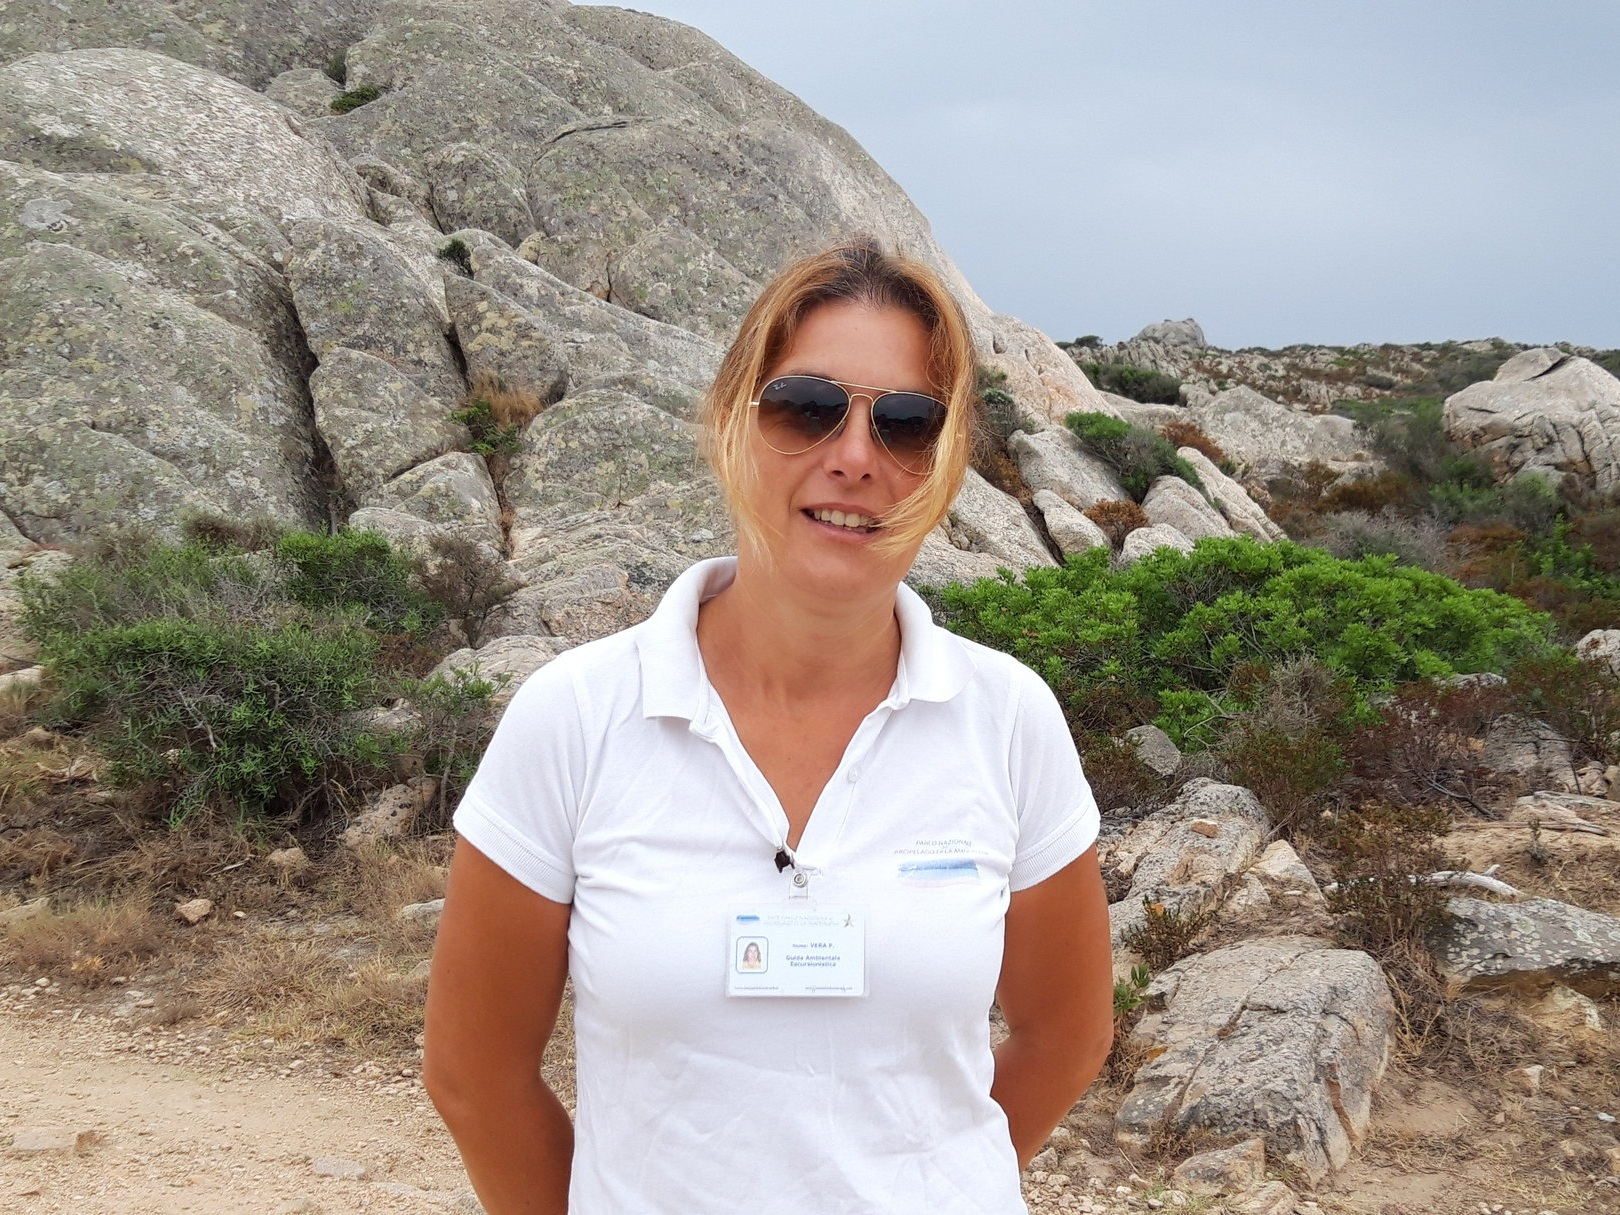 Vera Pittalis   After years of leadership in Retailing and Human Resources, Vera Pittalis returned to Sardinia. Since 2013, she has worked as an Environmental Guide to Hiking in the National Parks of La Maddalena and Asinara. Lover of nature and history, she has managed to transform her passion into work.